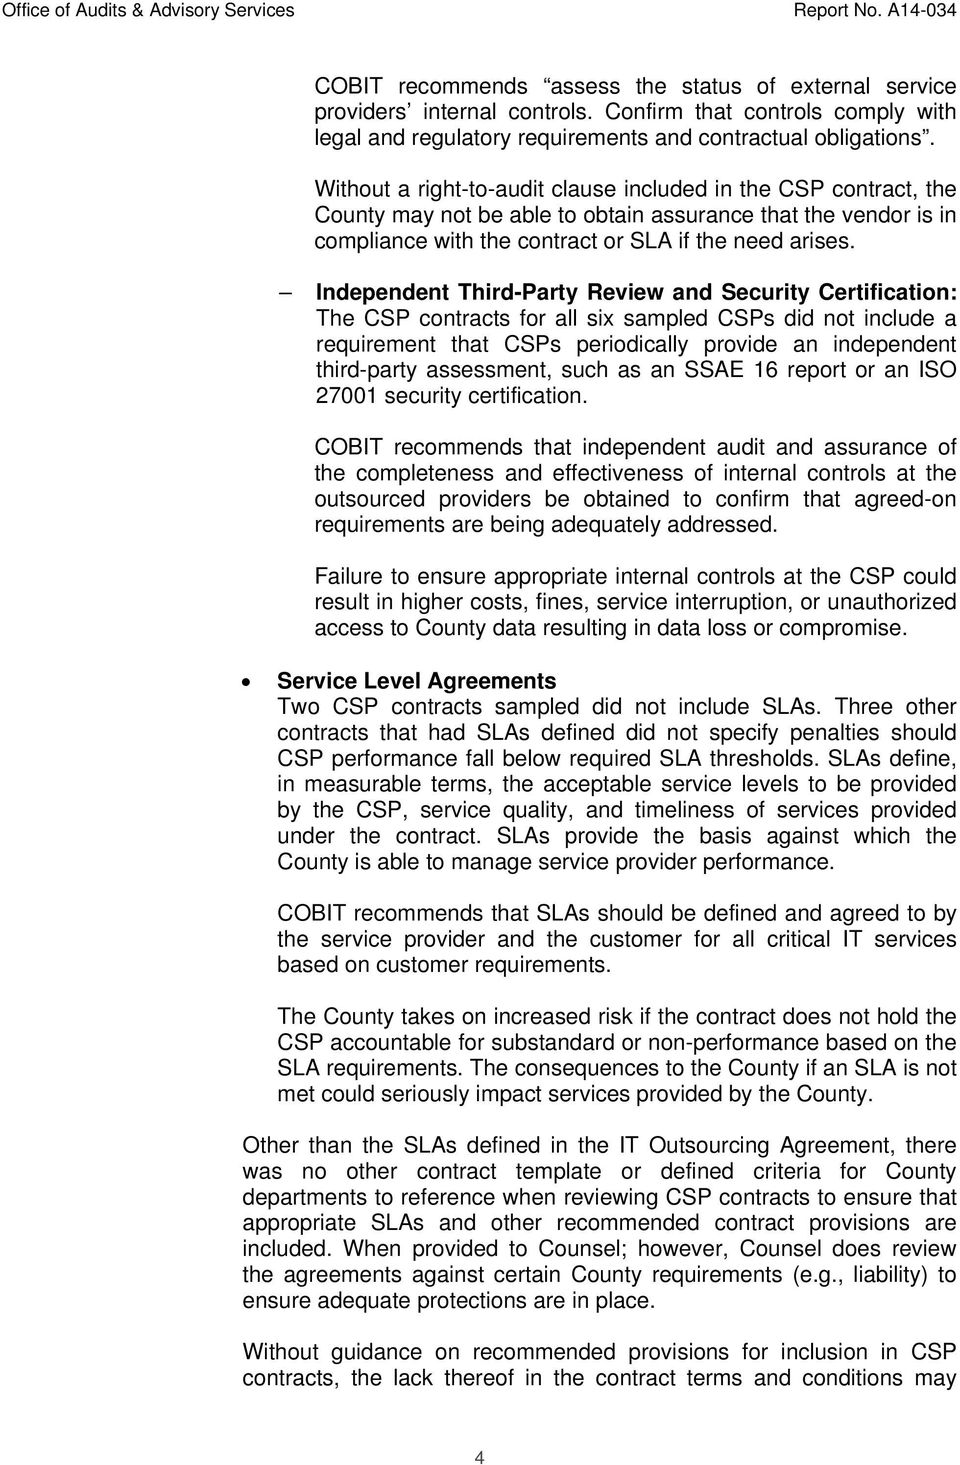 Independent Third-Party Review and Security Certification: The CSP contracts for all six sampled CSPs did not include a requirement that CSPs periodically provide an independent third-party